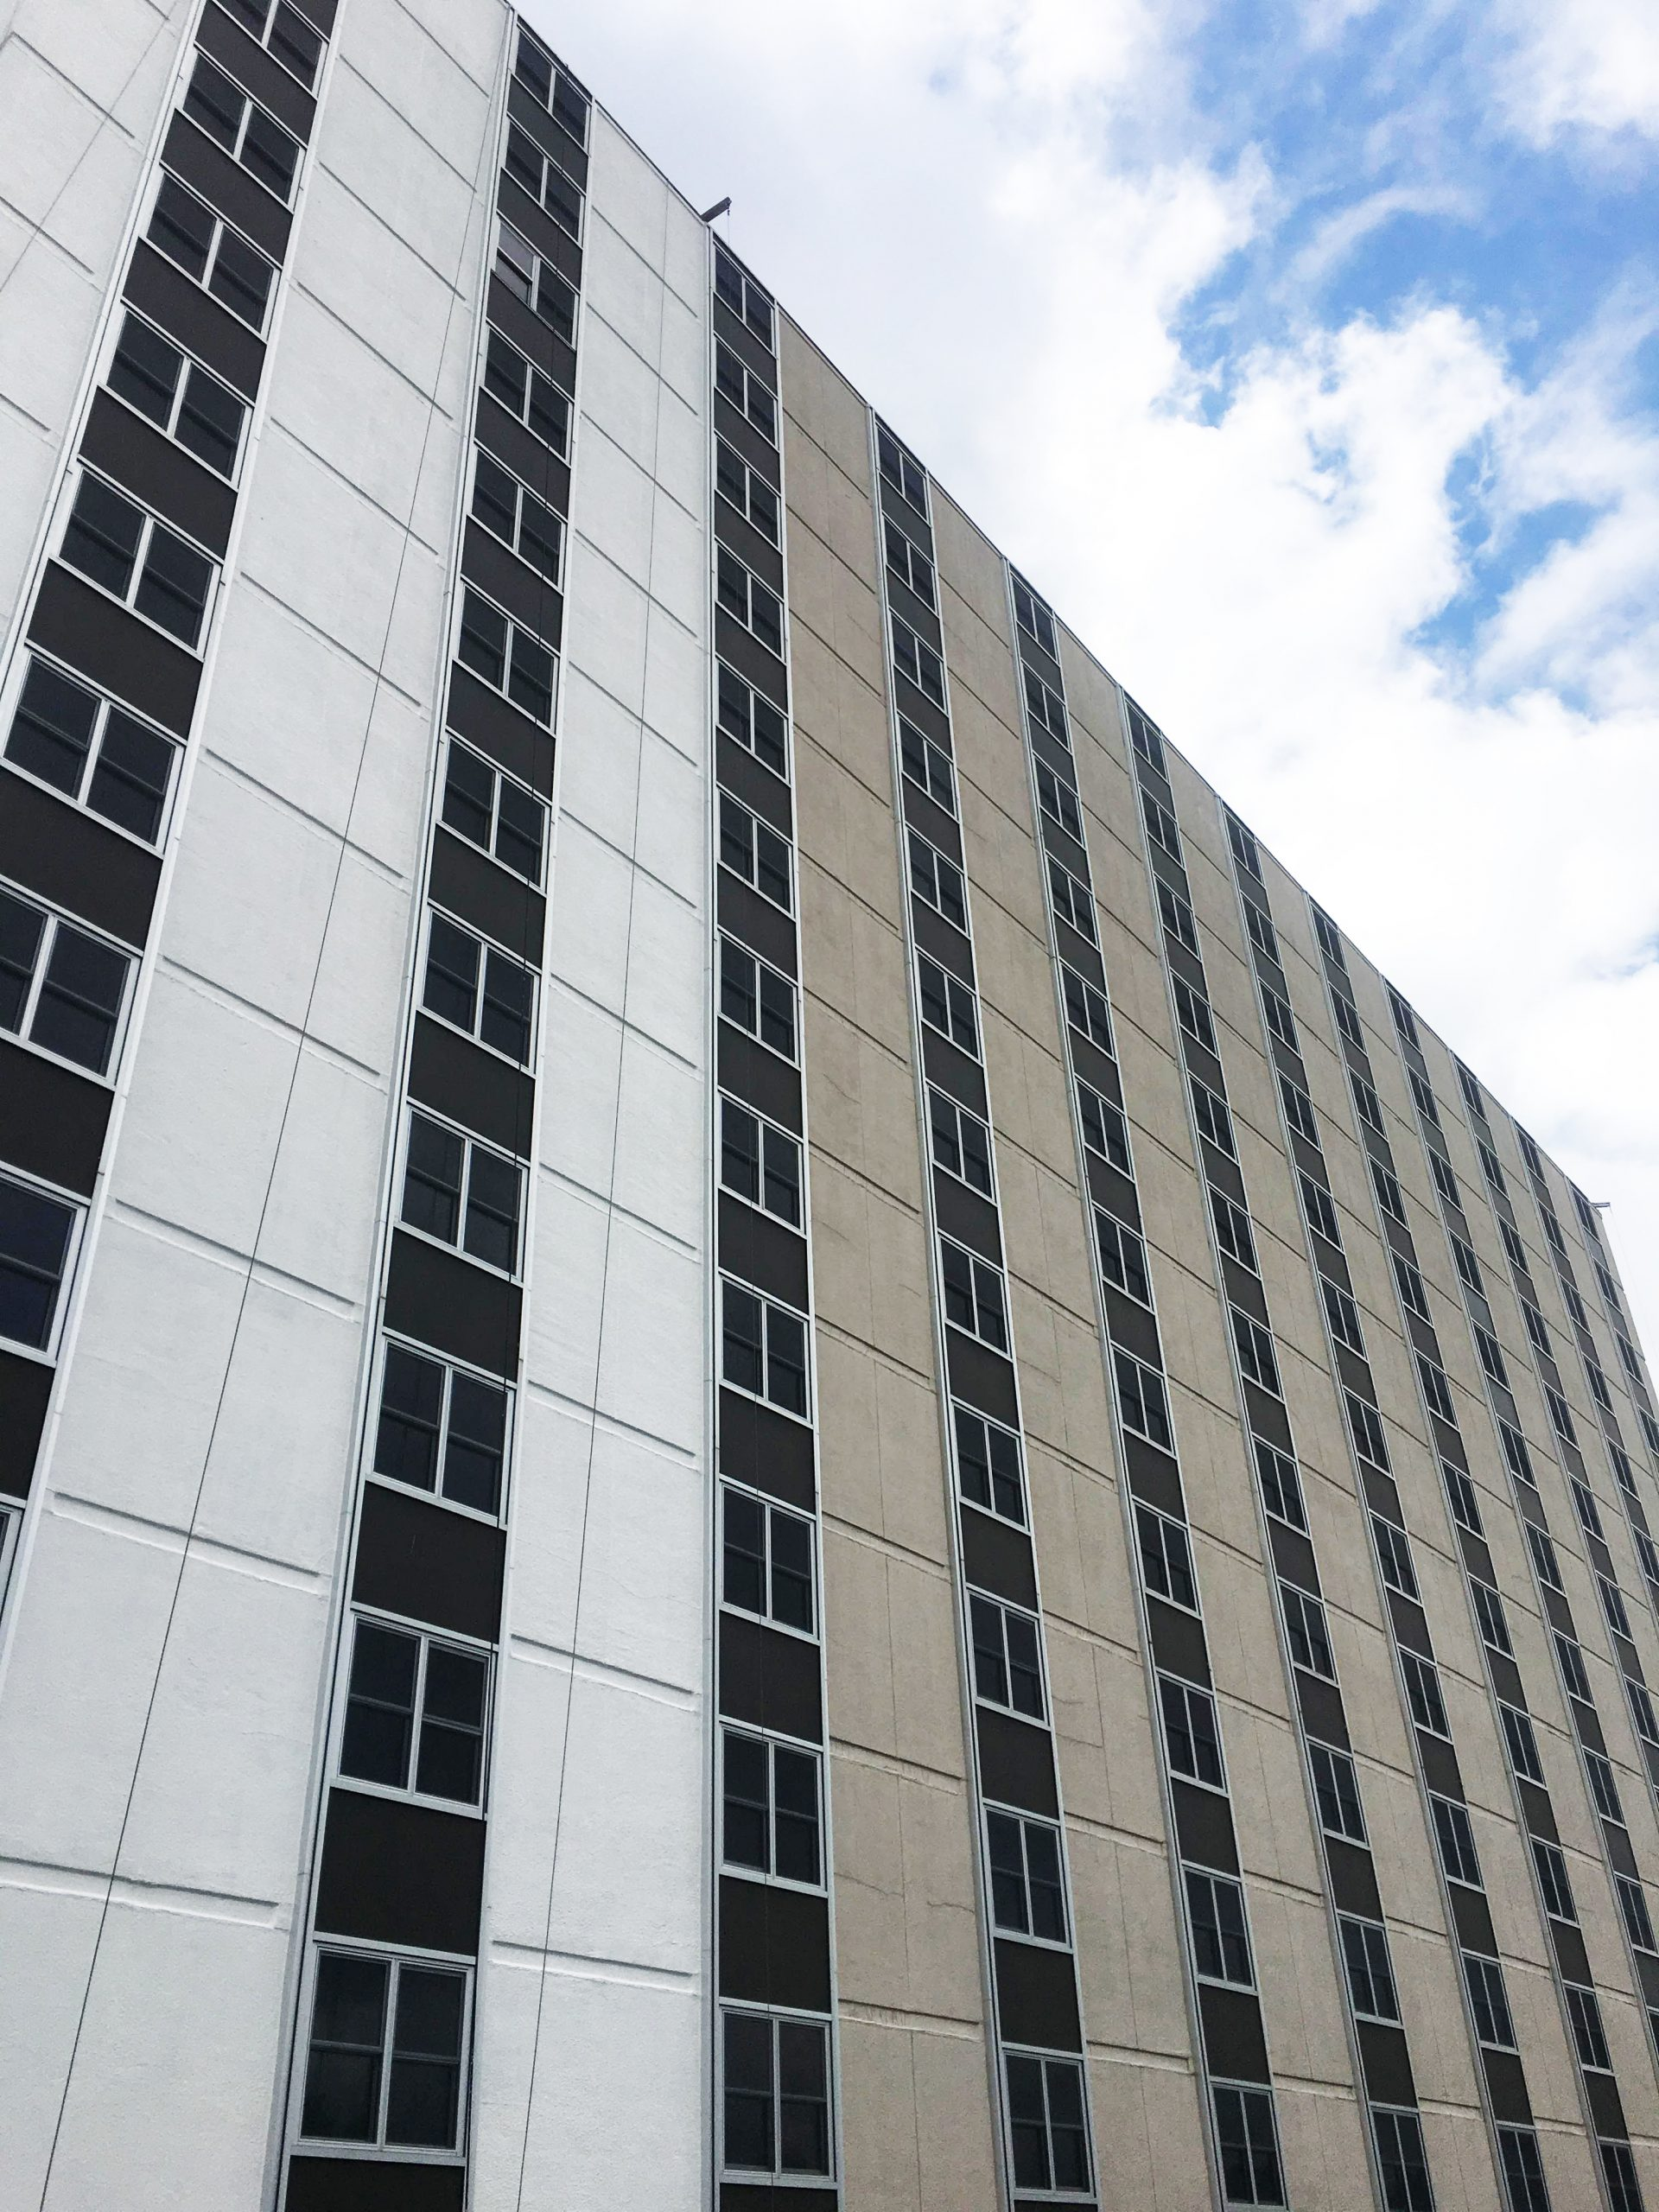 Bromley Hall student residential building in Champaign, IL undergoing Presto surface restoration and repairs to cracks and voids in the EIFS system